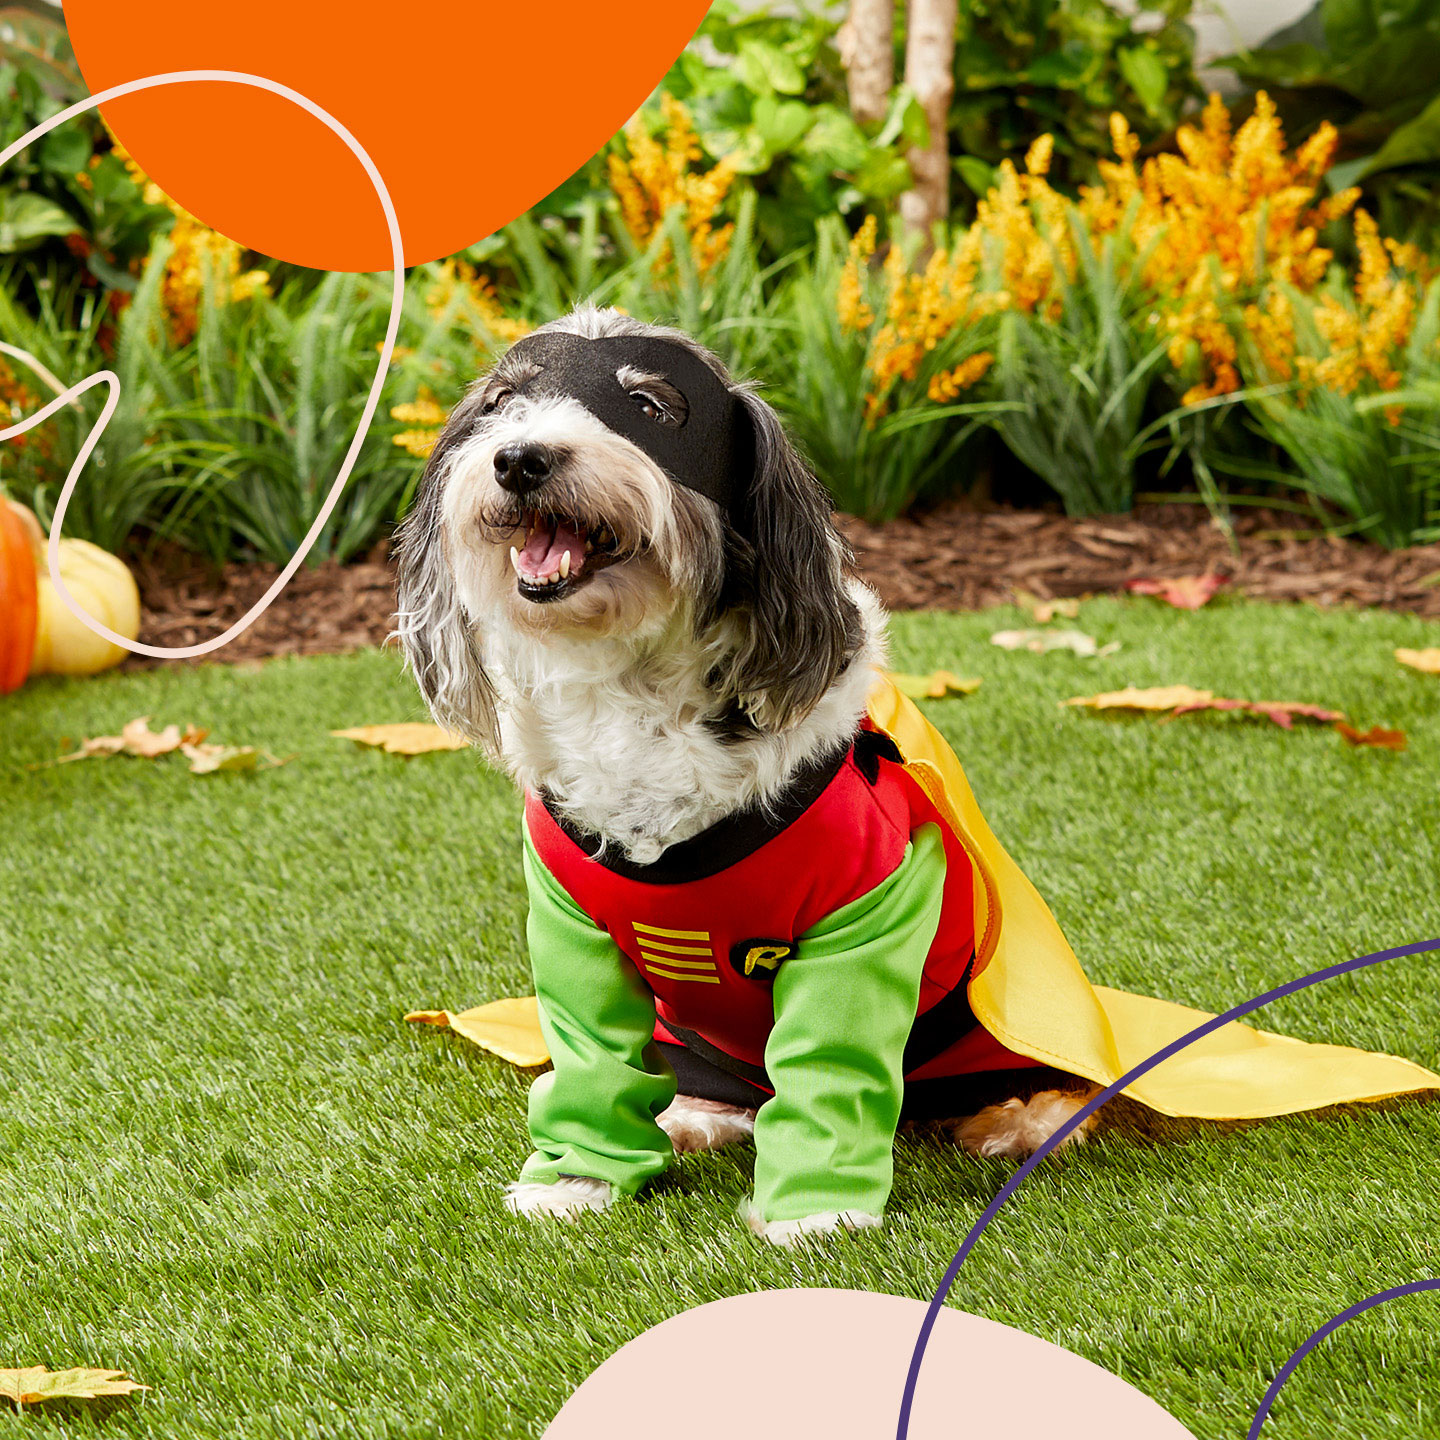 Bst large dog halloween costumes - robin